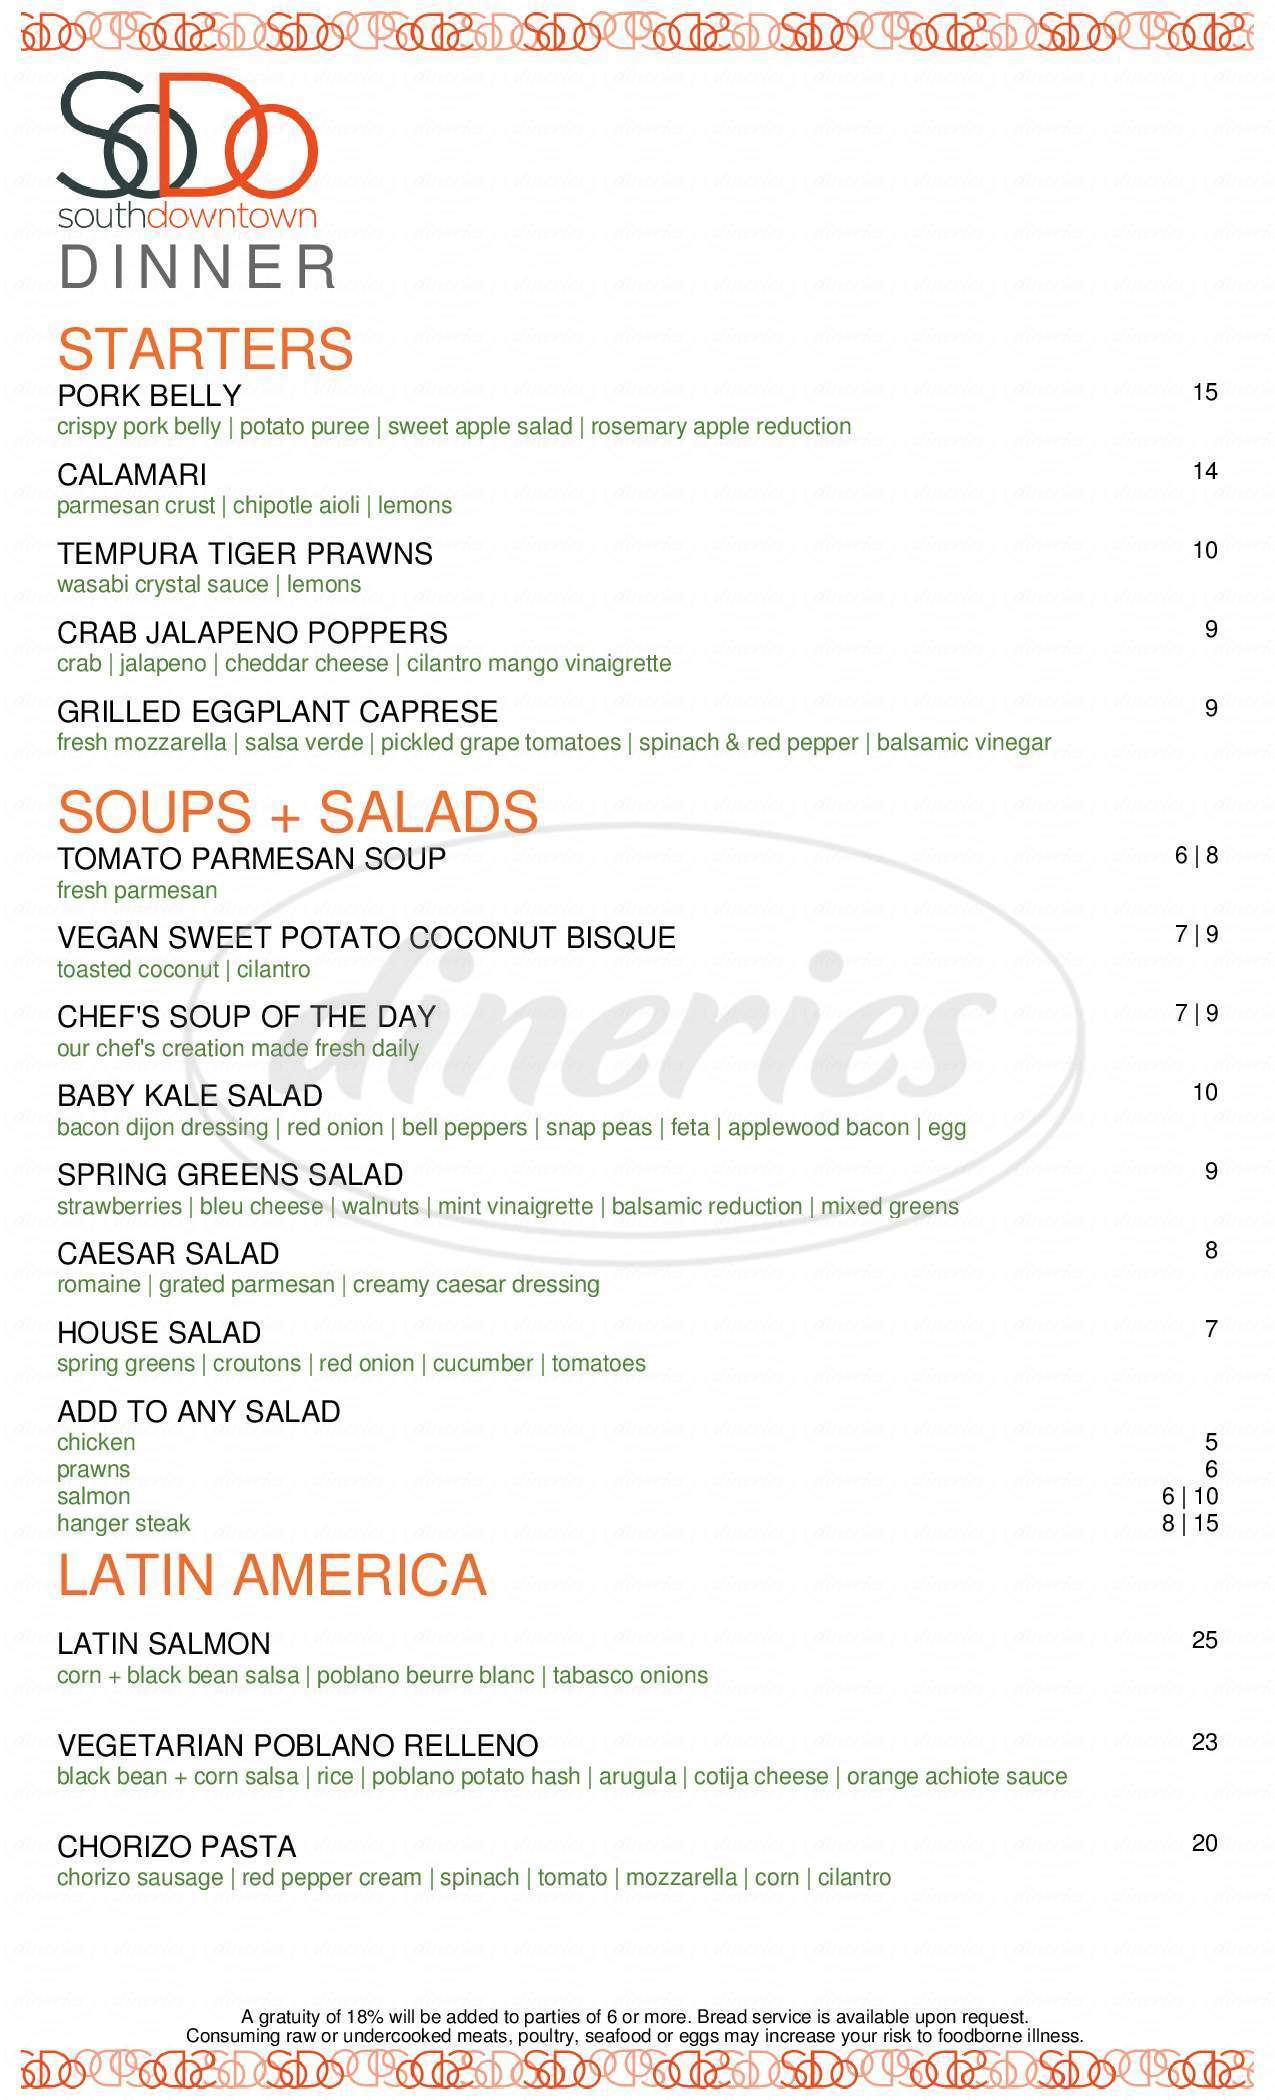 menu for SoDo Restaurant and Bar